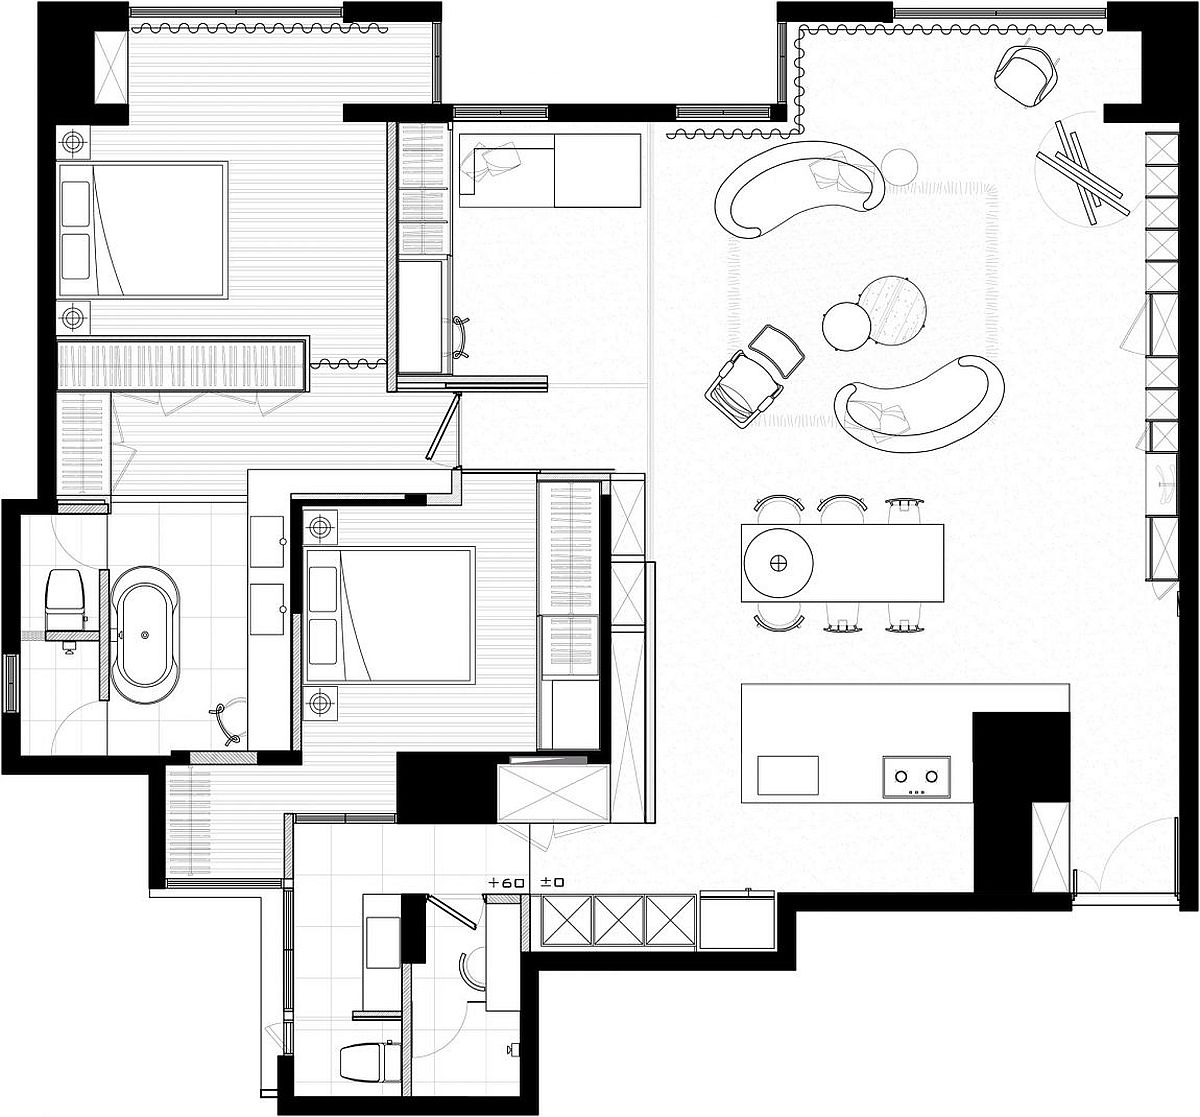 Floor plan of the revamped private residence in Taipei